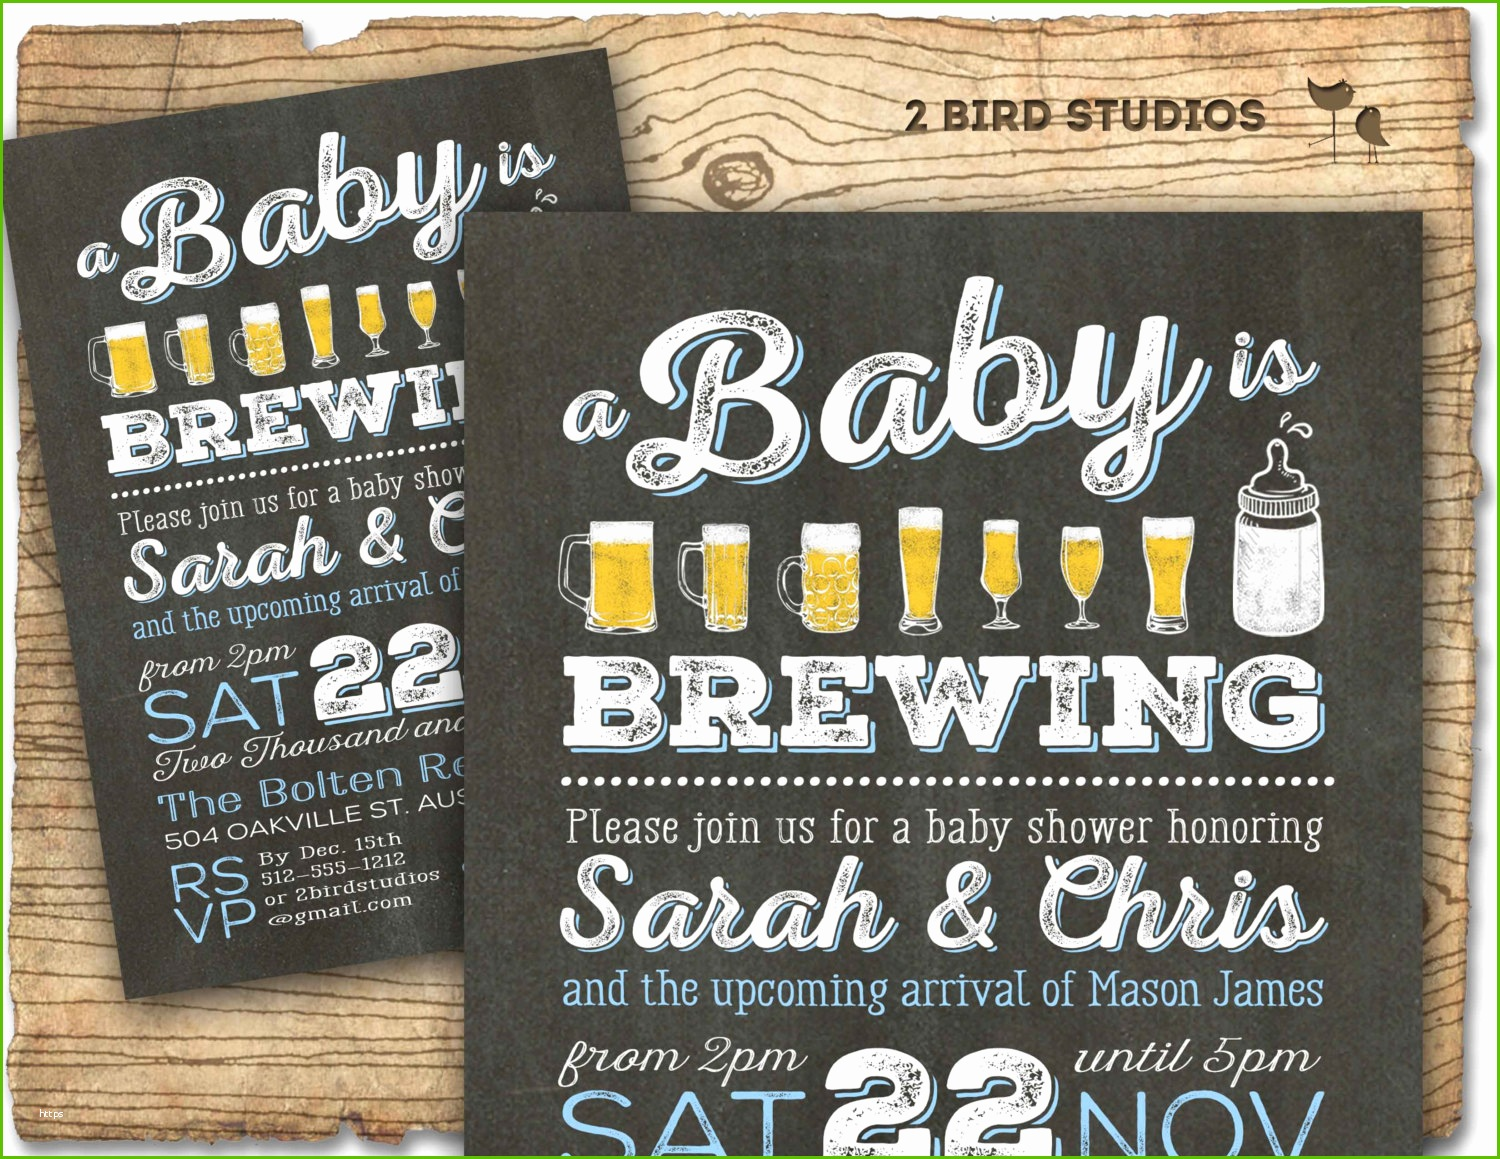 Full Size of Baby Shower:precious Coed Baby Shower Picture Designs Coed Baby Shower Baby Shower Tableware Baby Shower De Baby Shower Napkins Baby Shower Ideas Baby Shower Cake Ideas Baby Yager Is A Coed Baby Shower Fabulous Bbq Beer Baby Shower